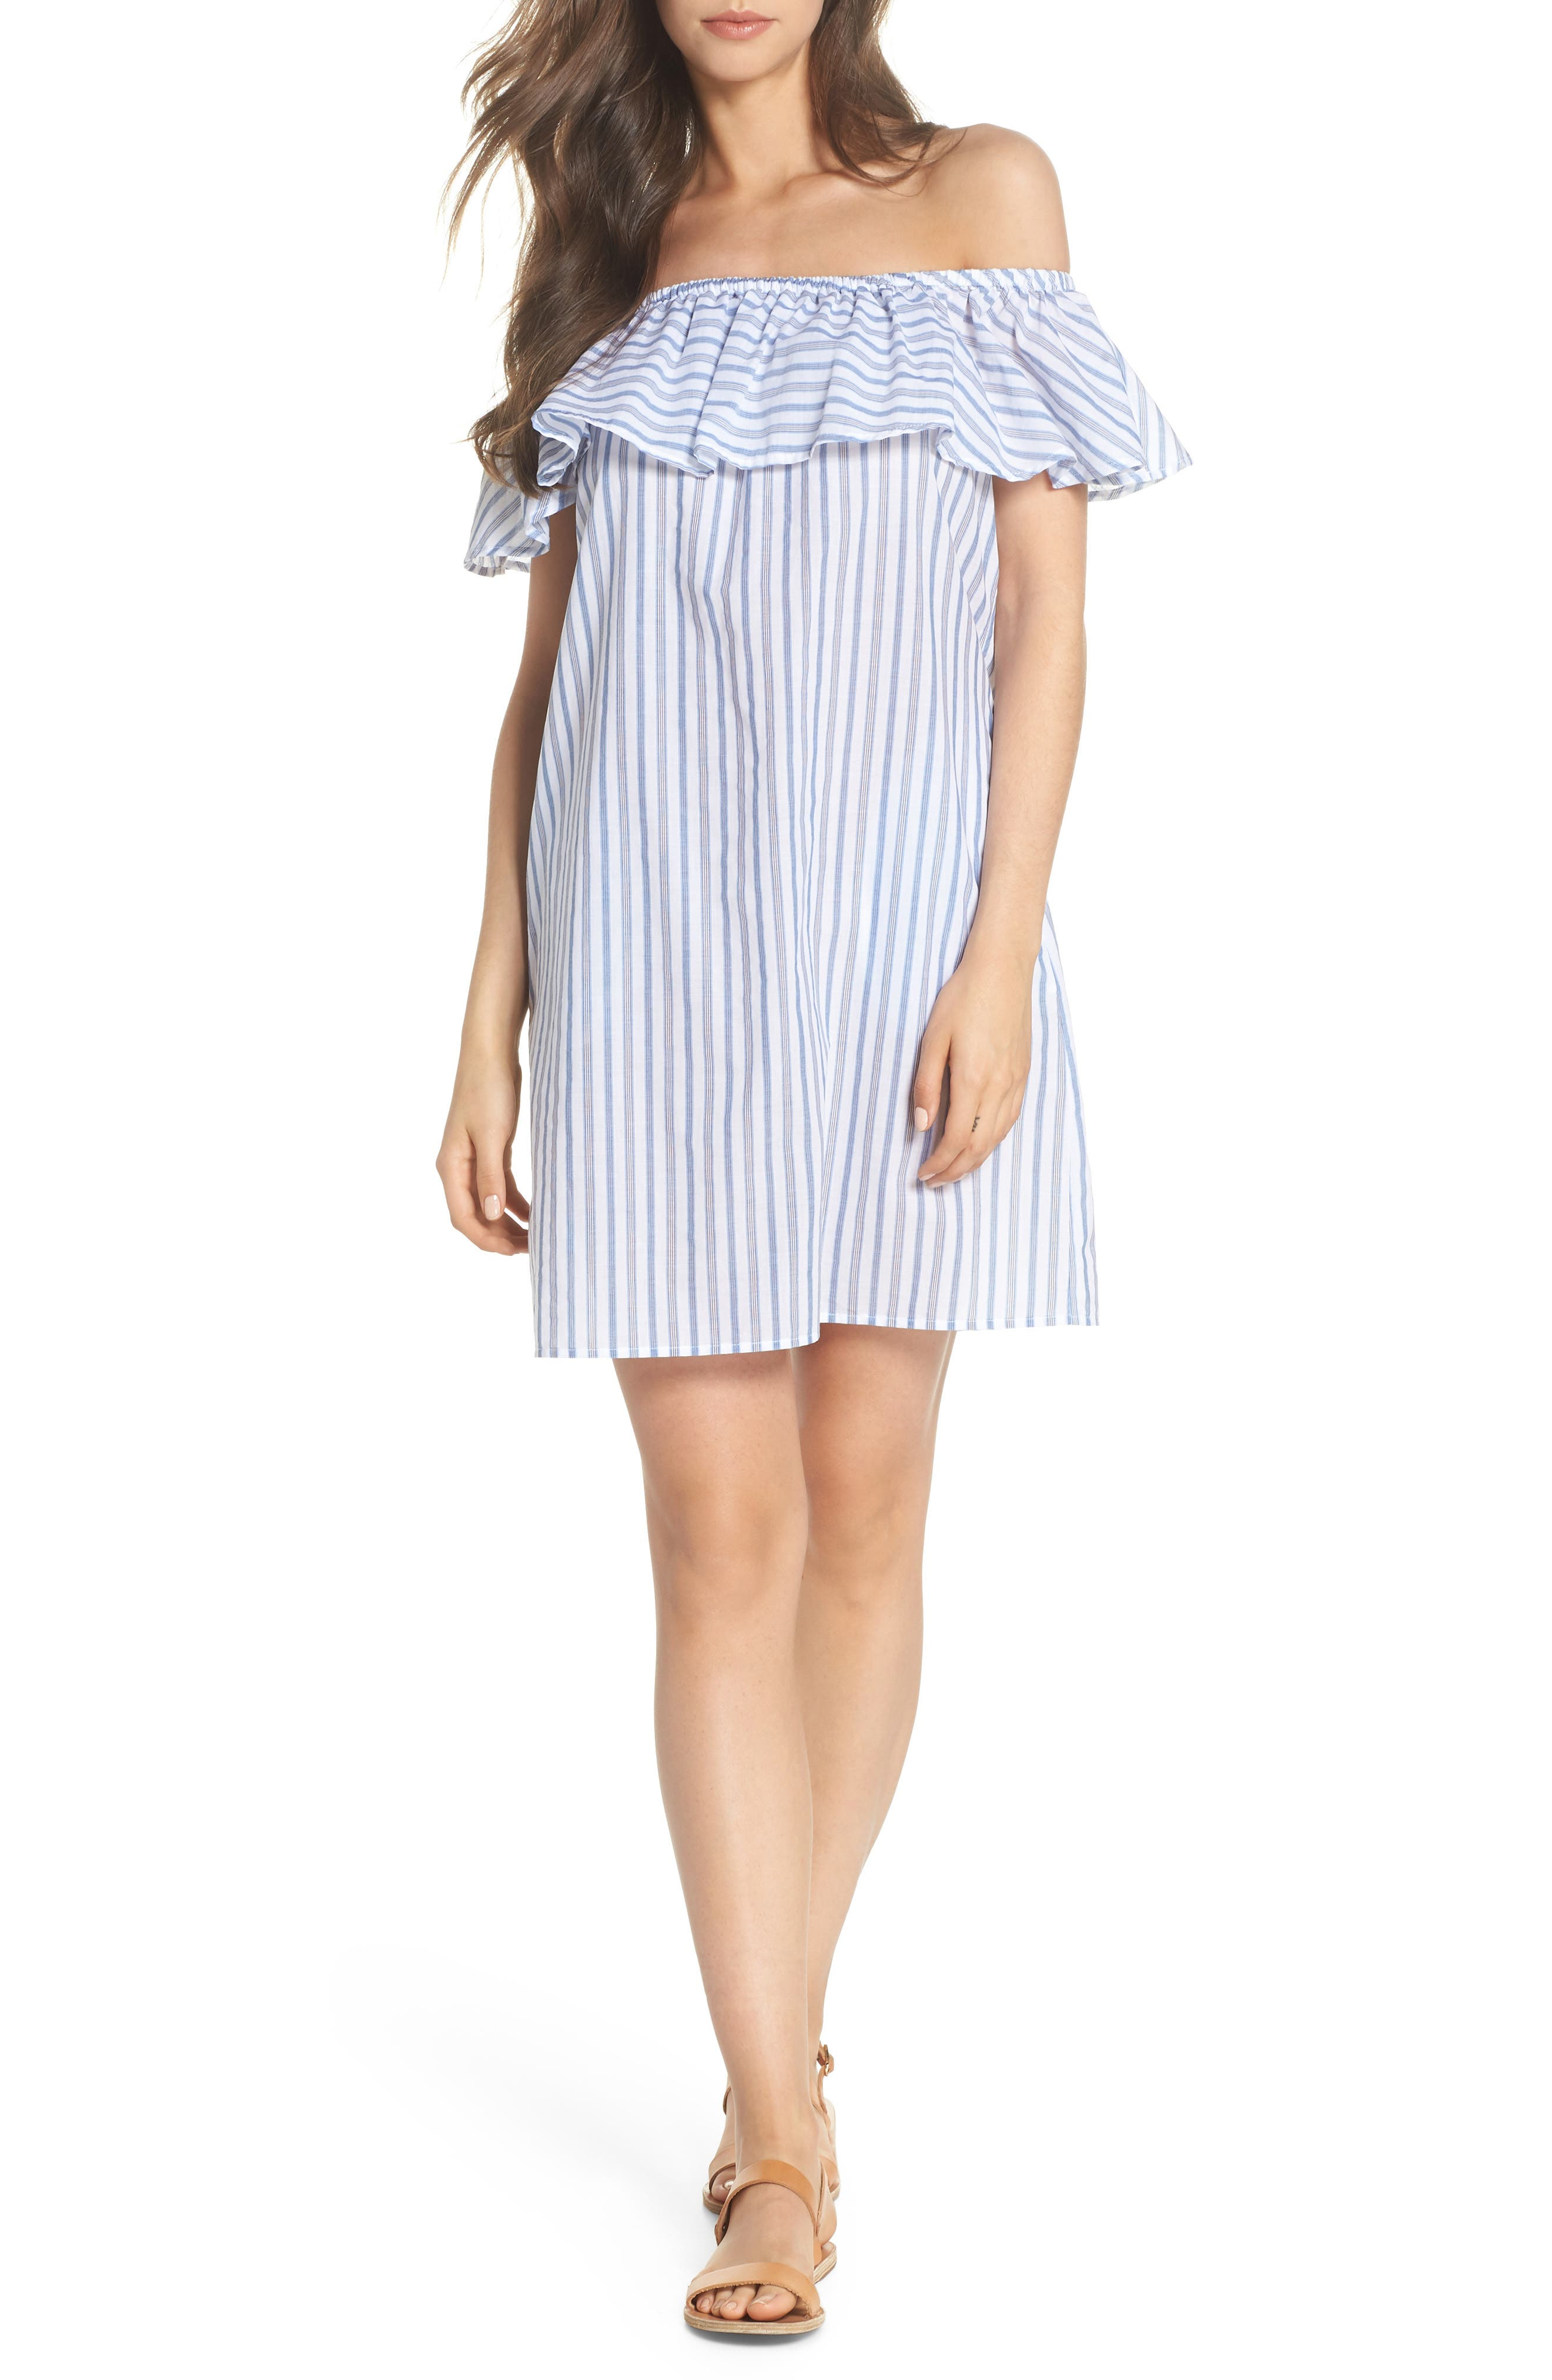 Ticking Stripe Off the Shoulder Cover-Up Dress,                             Main thumbnail 1, color,                             100